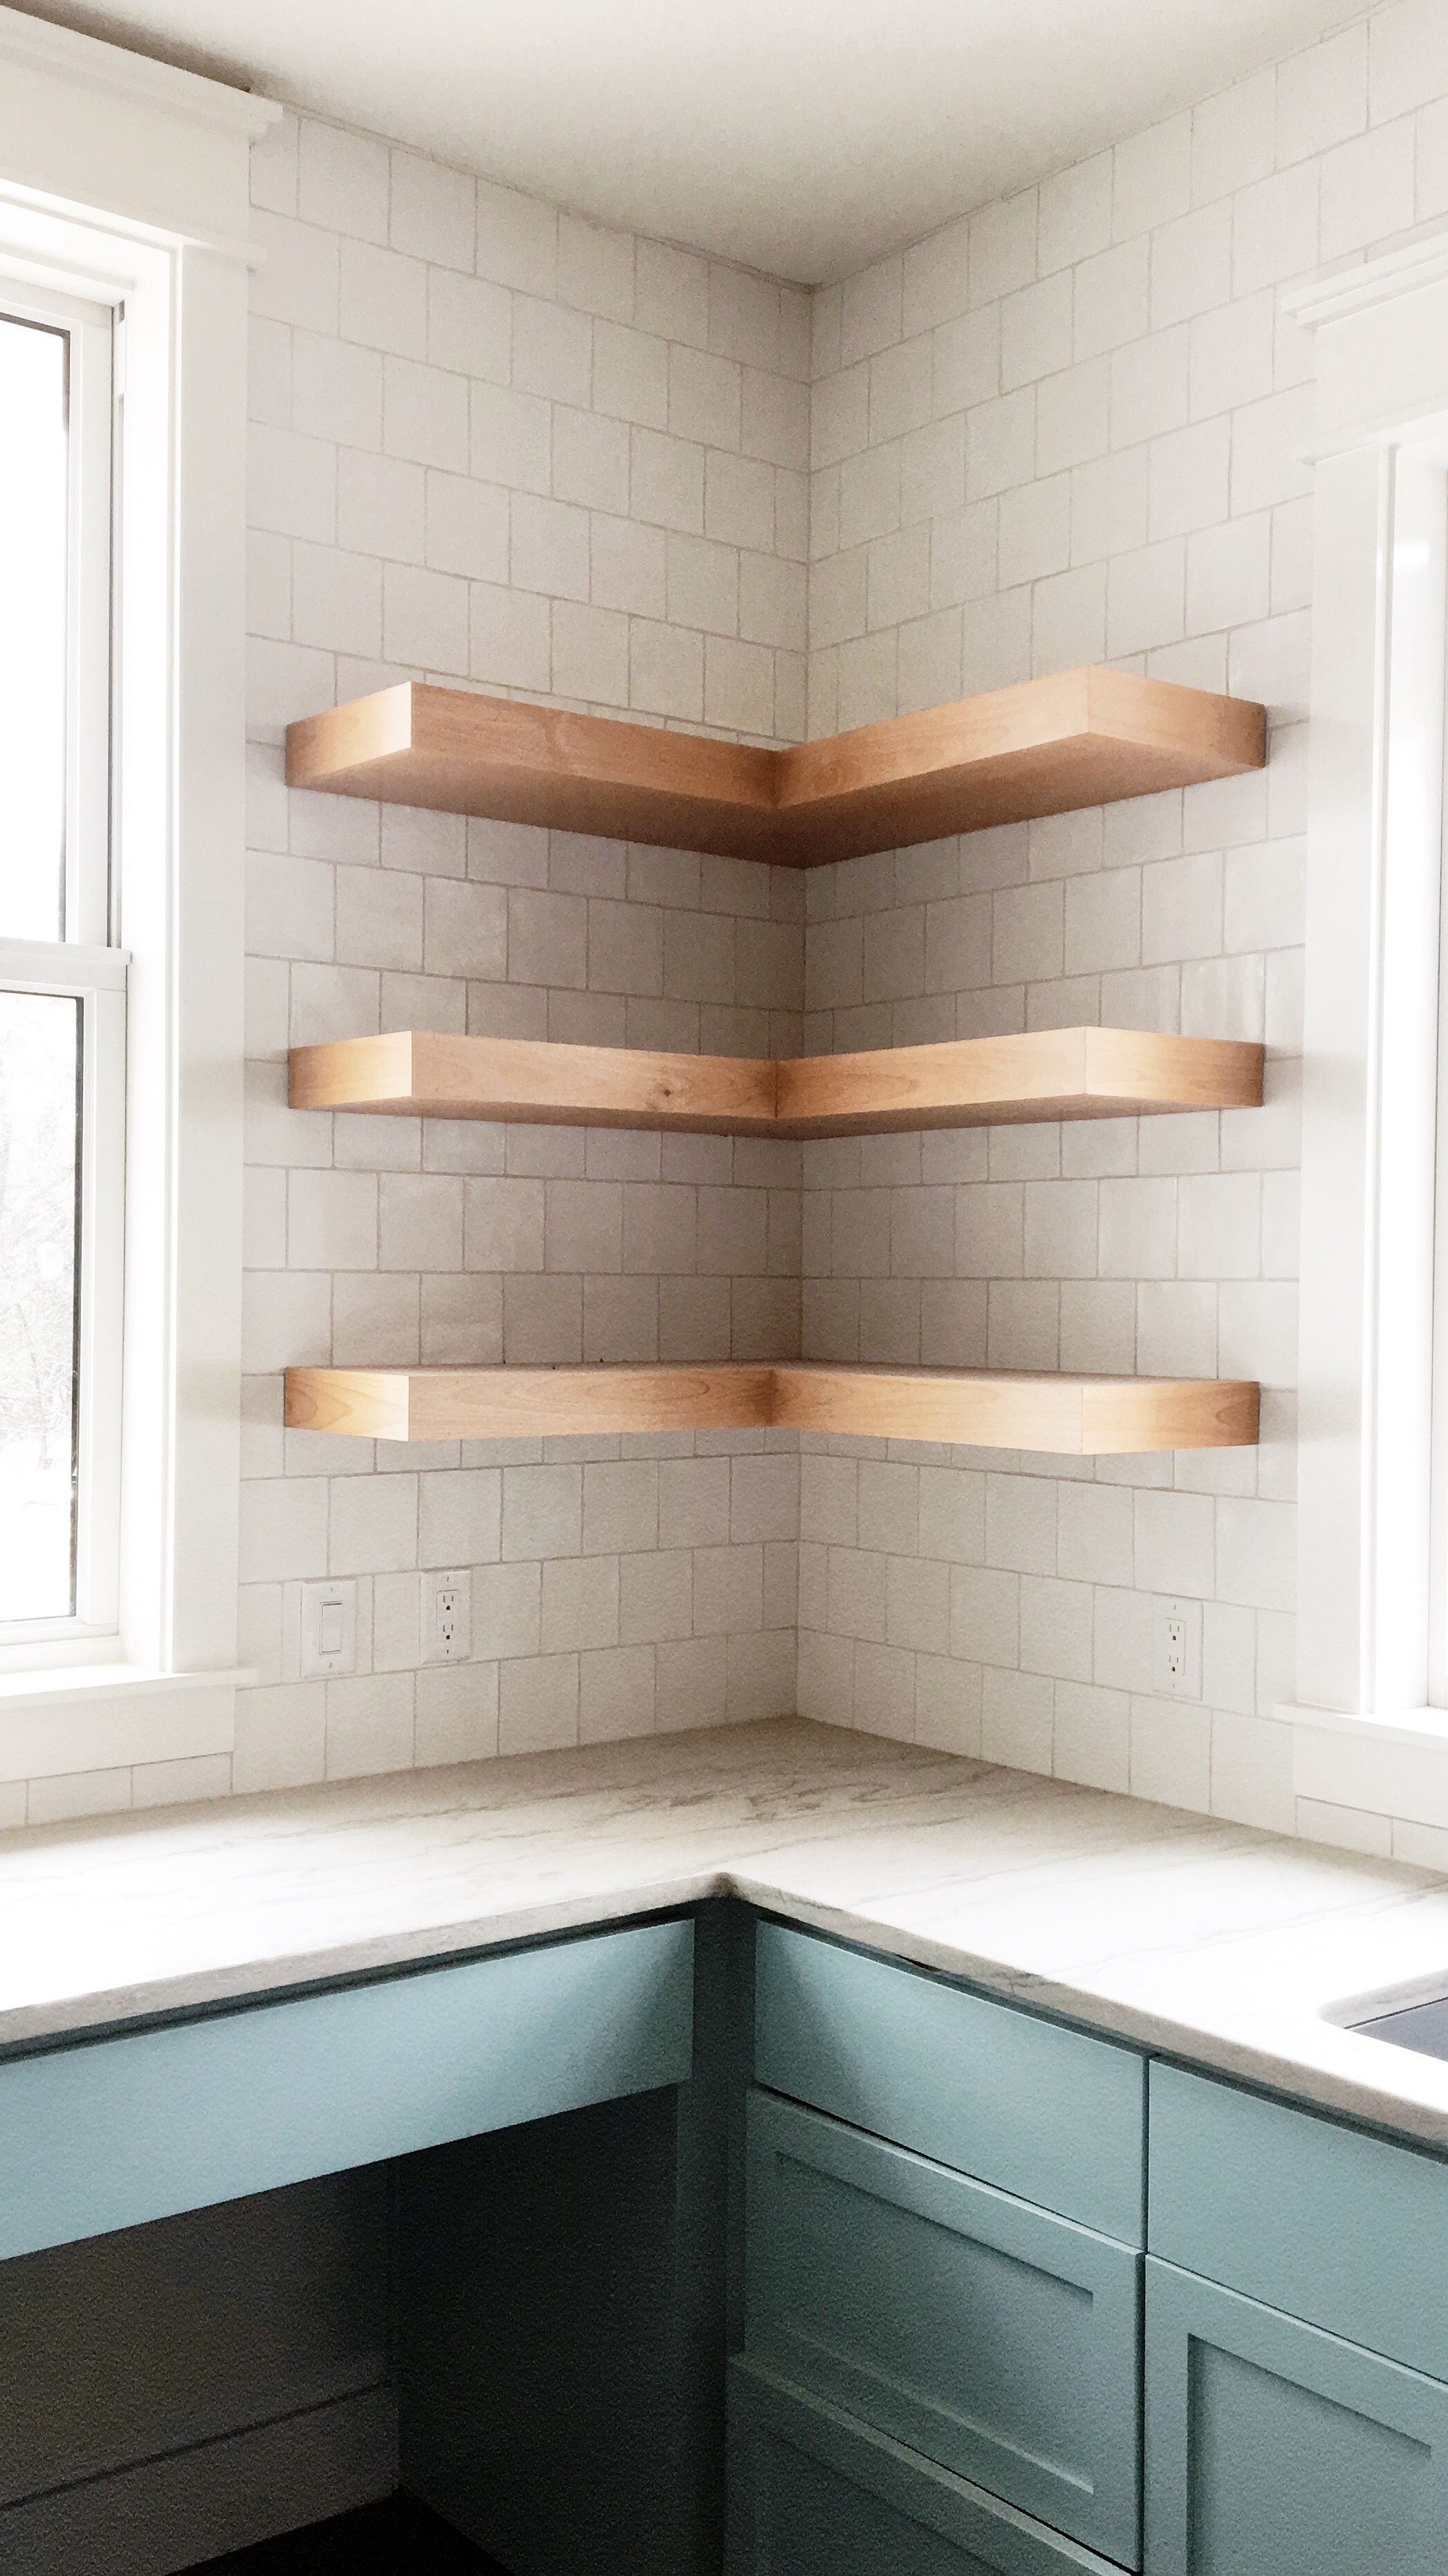 Custom Wheelwrightproject Exposed Light Wood Laundry Room Shelves Matte Hand Carved Square Subway Floating Shelves Diy Laundry Room Shelves Home Kitchens